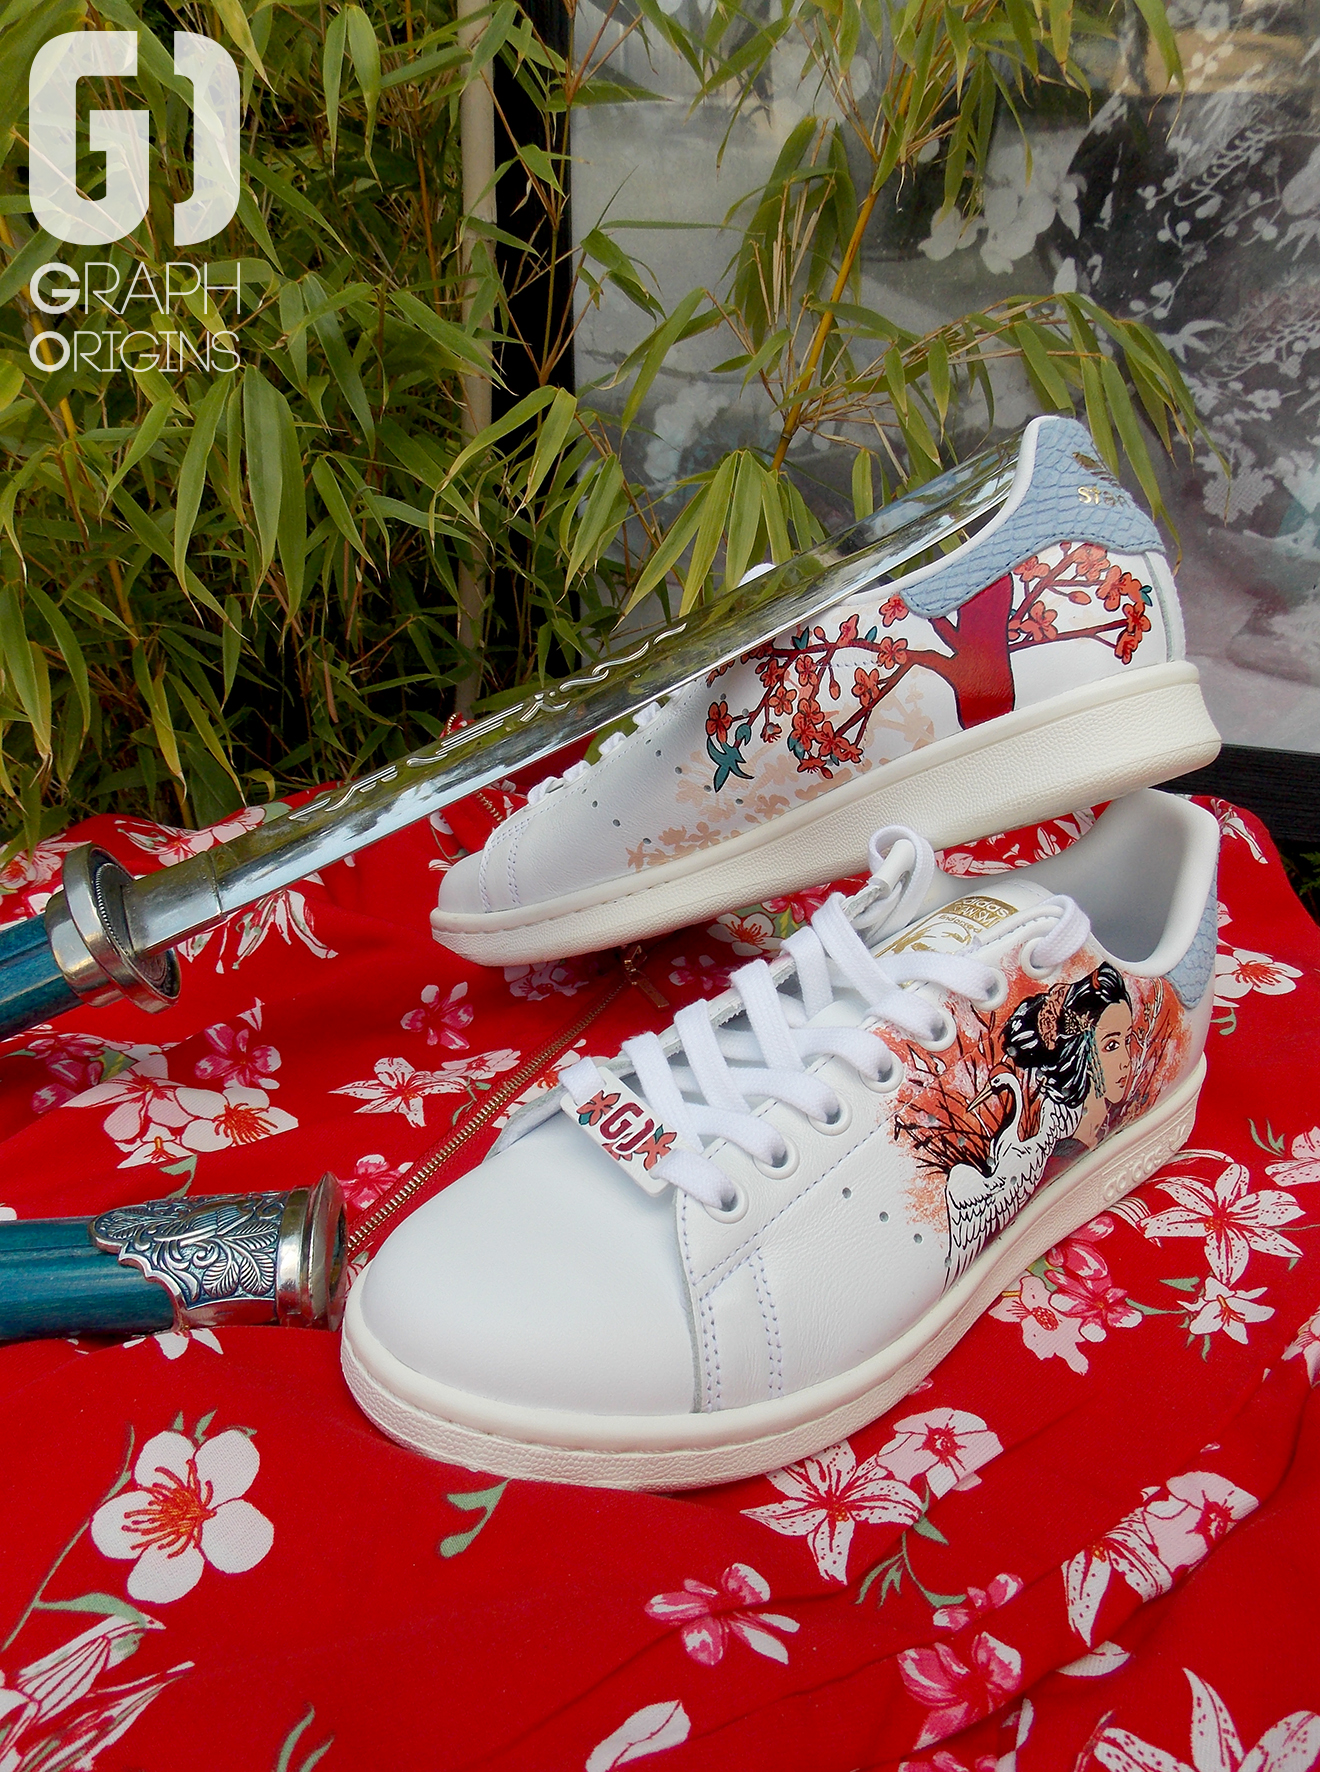 custom japonisant sur adidas stan smith.